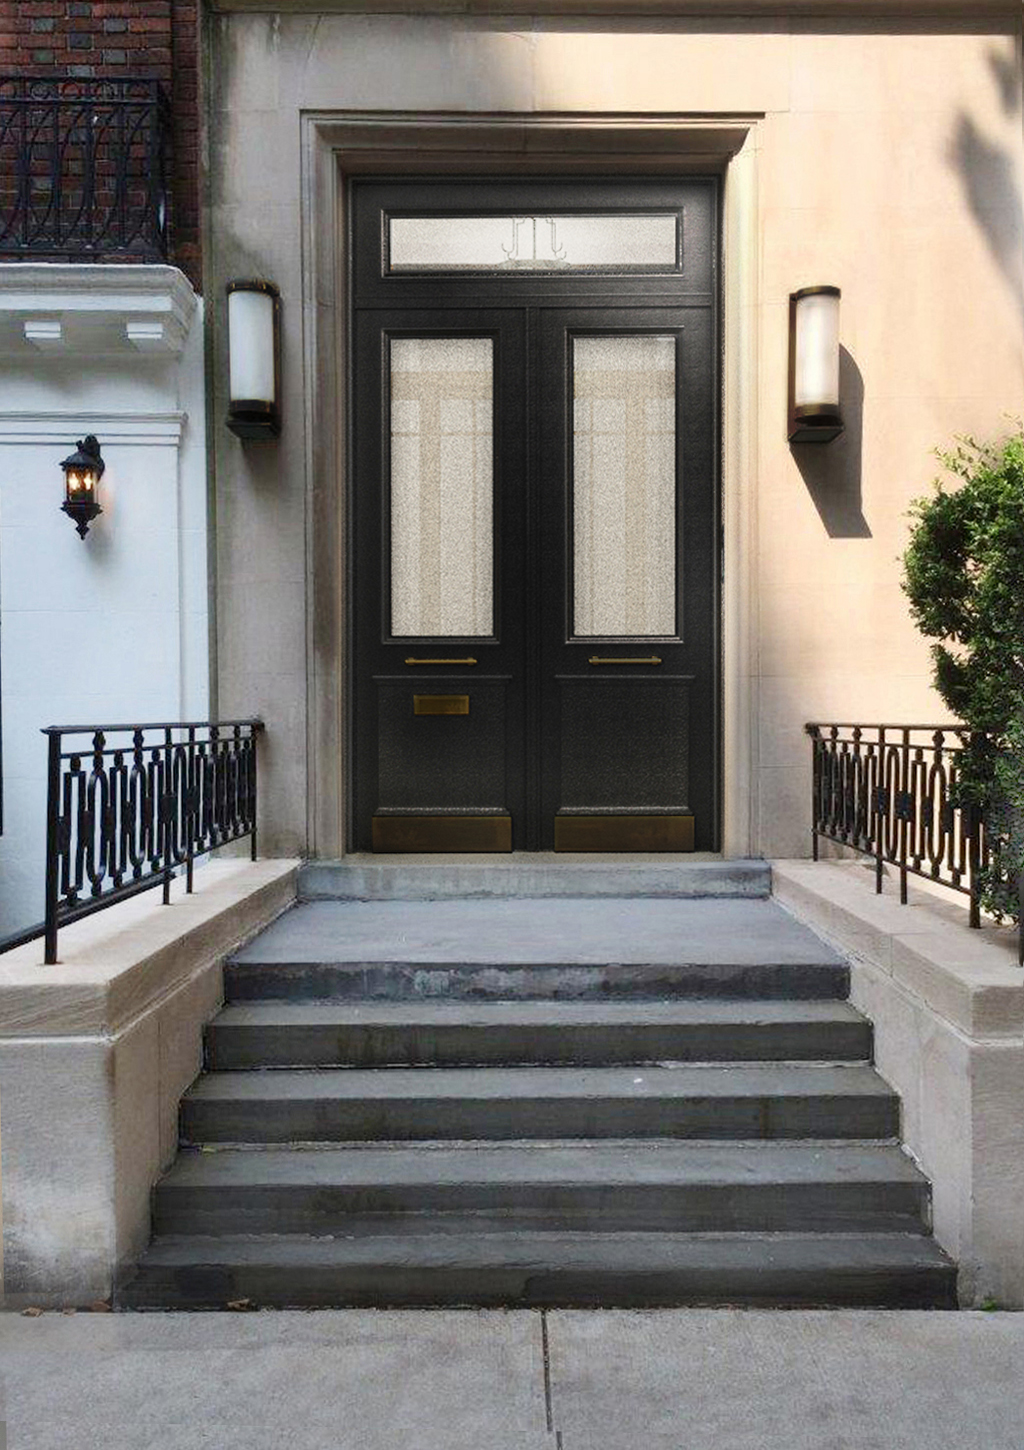 UPPER EAST SIDE TOWNHOUSE, NYC